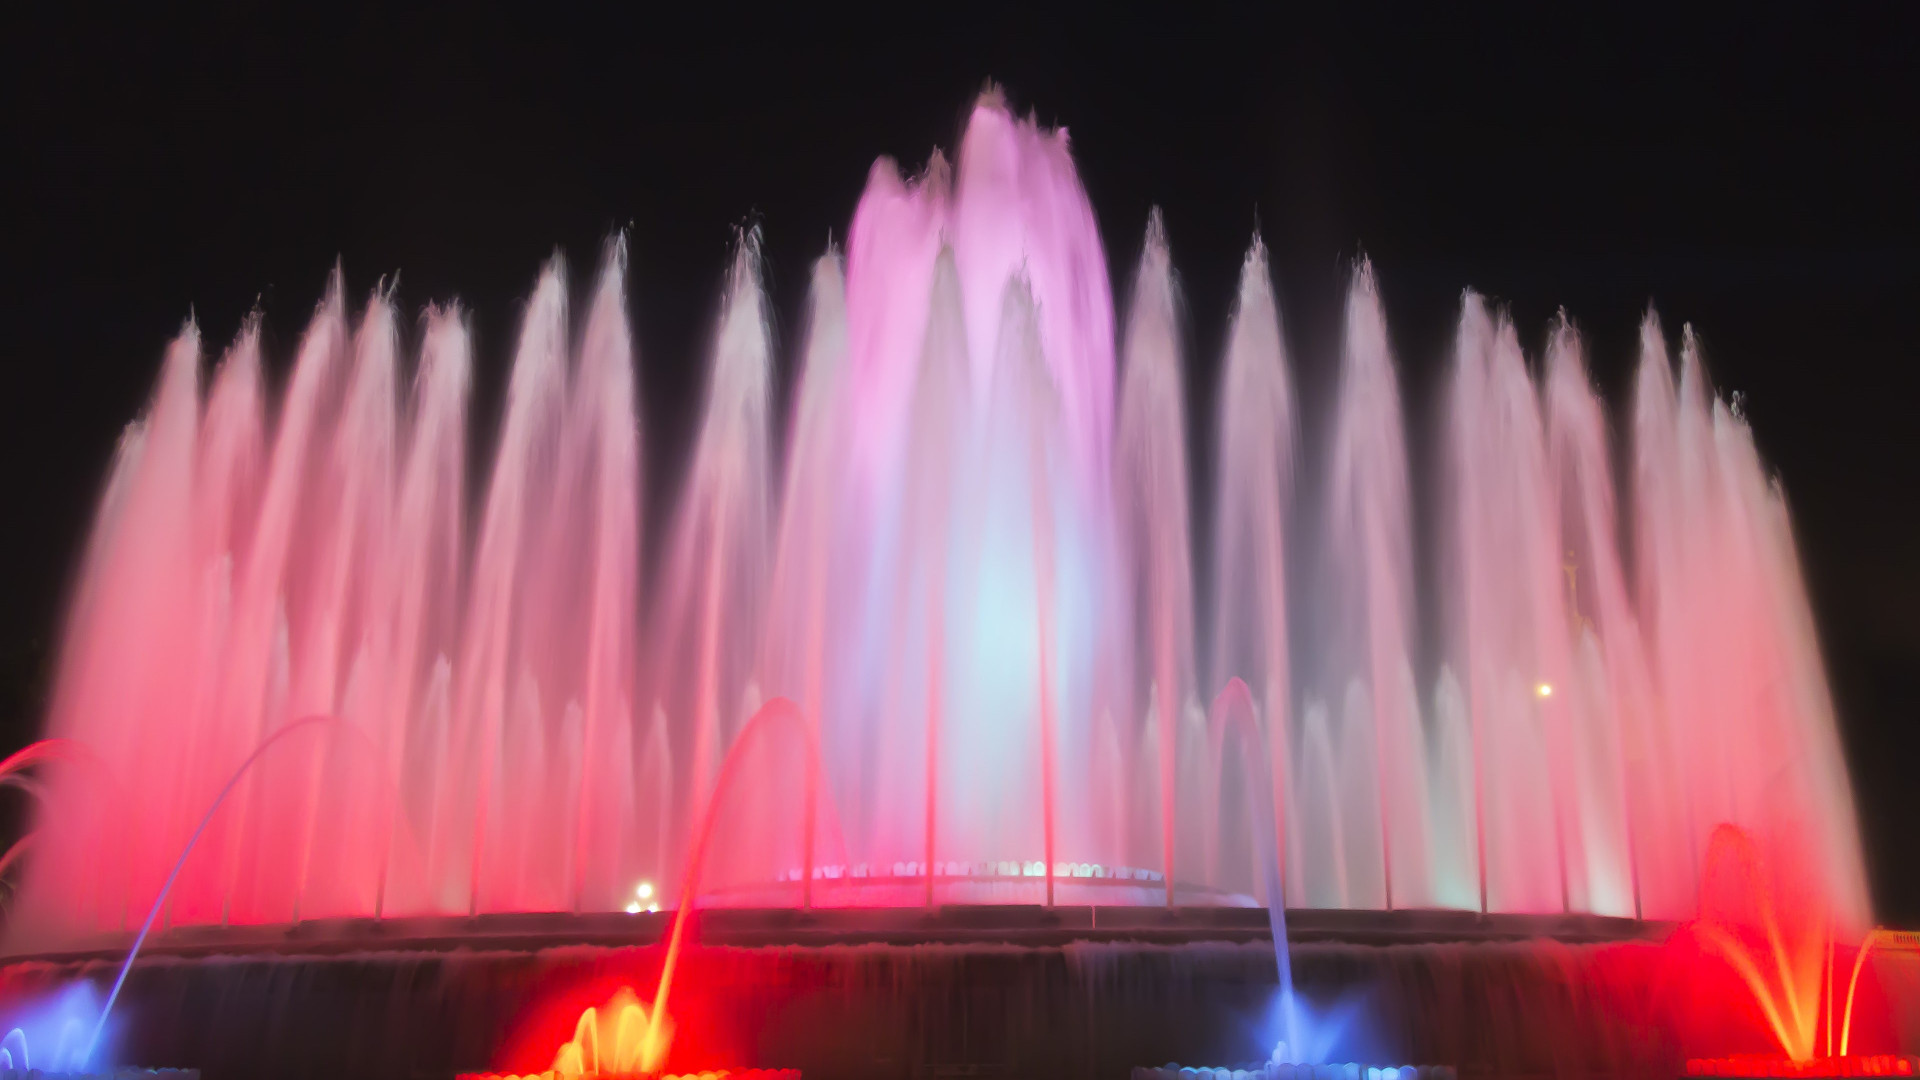 Fountains in Barcelona wallpaper 1920x1080